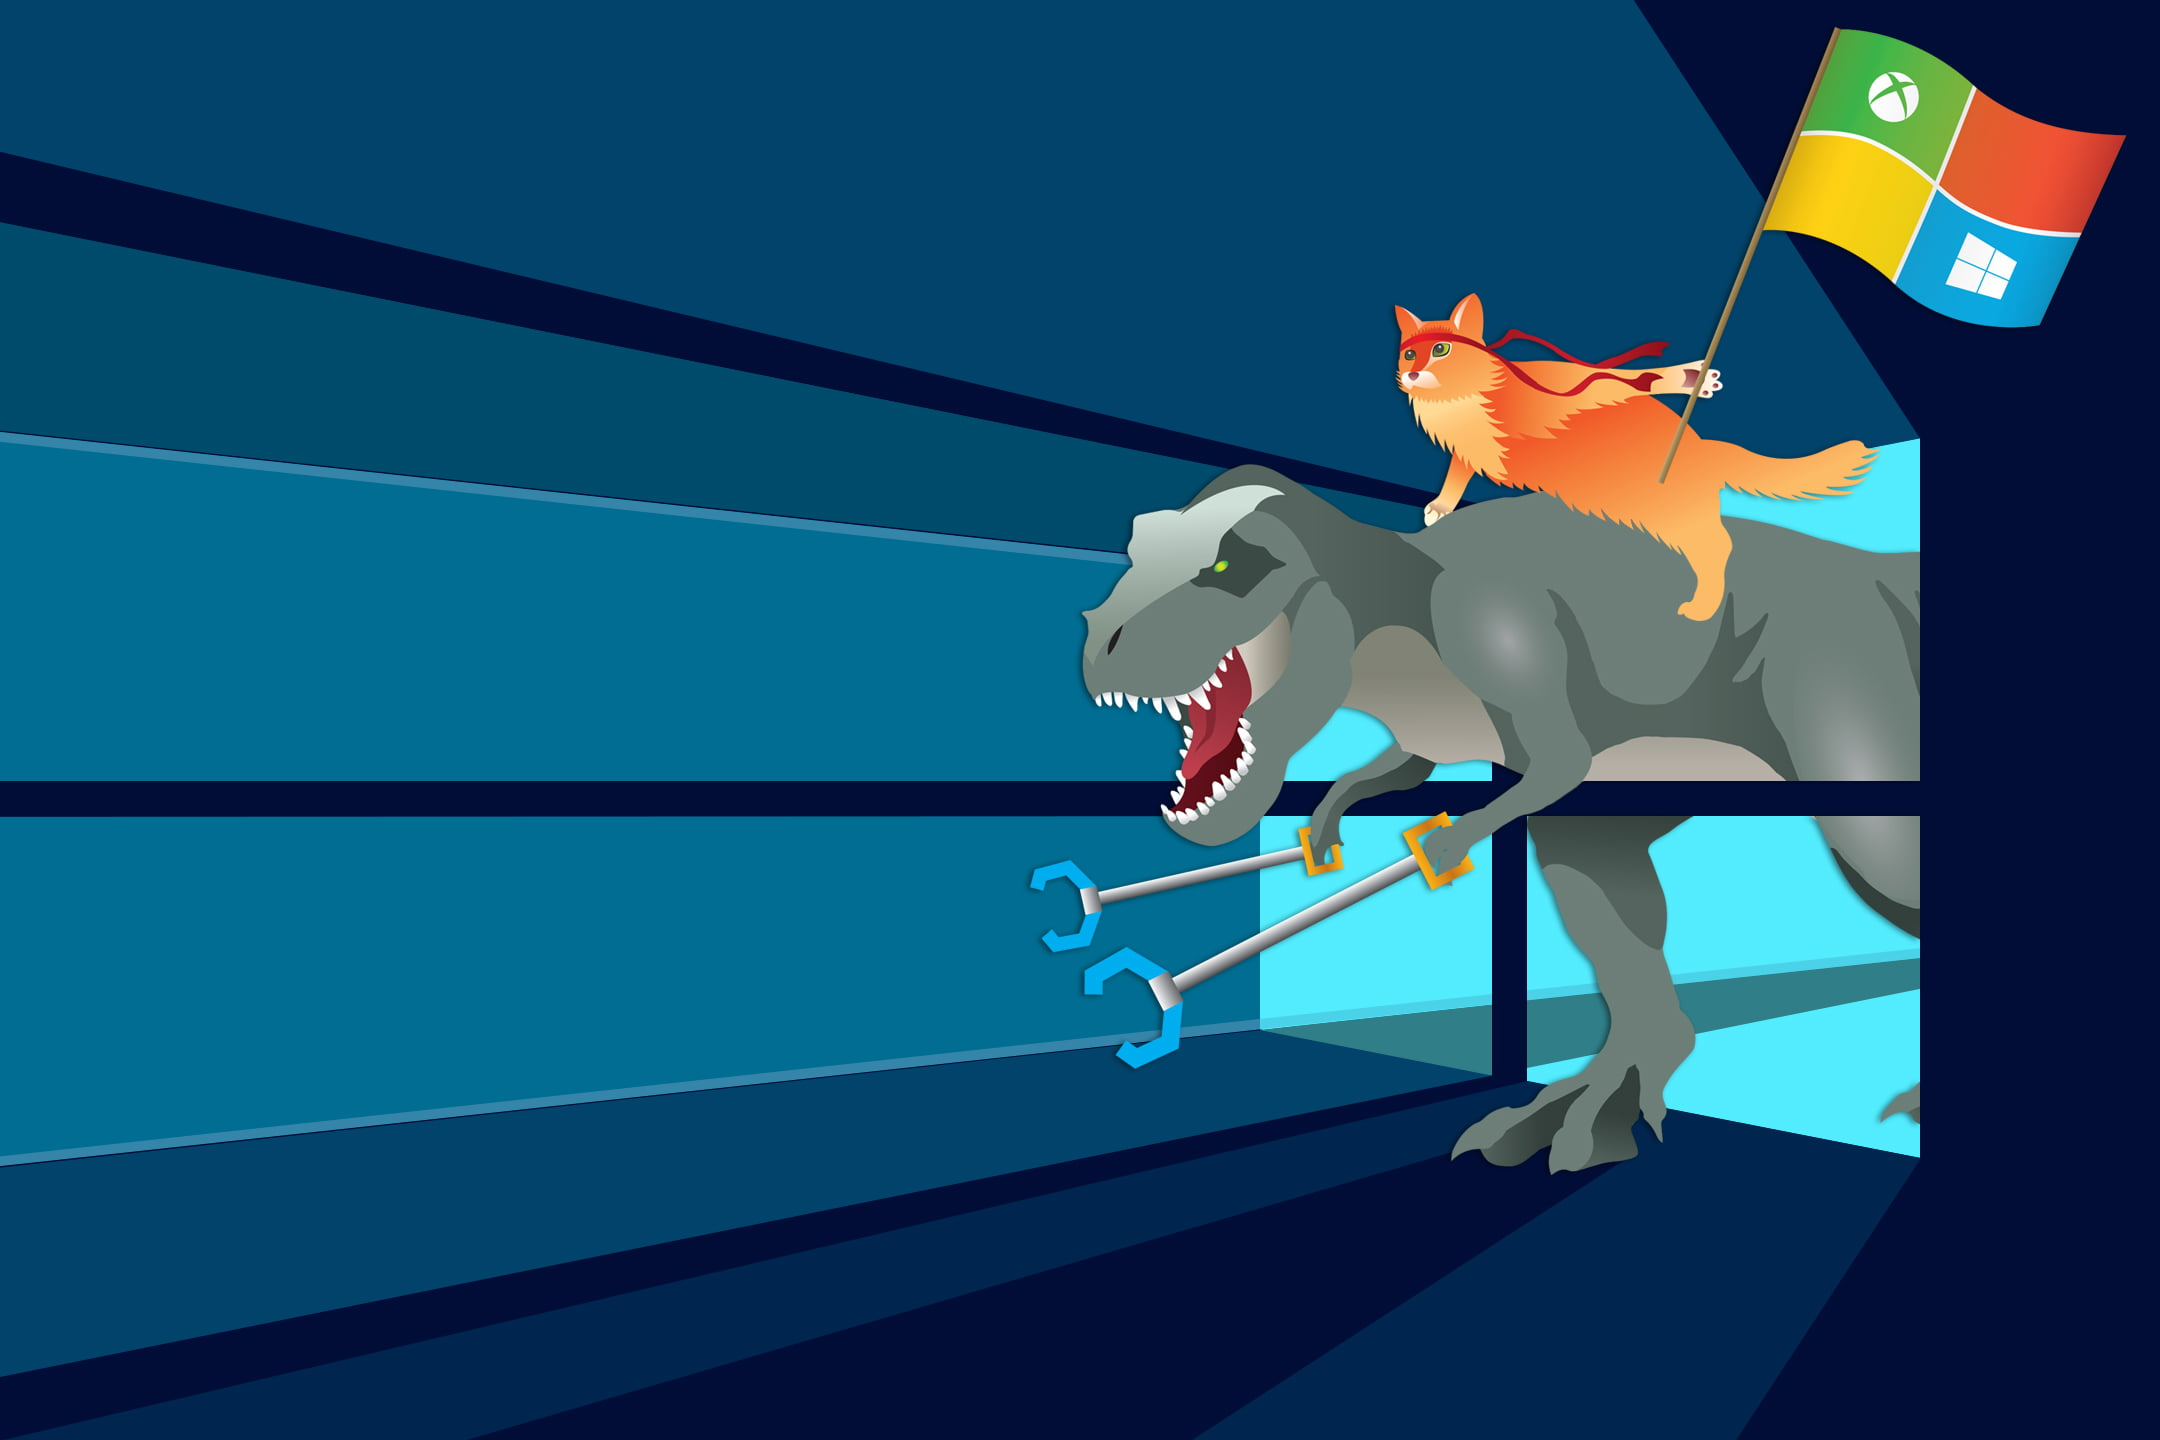 Fondo de Windows Insider con dragón y gato ninja